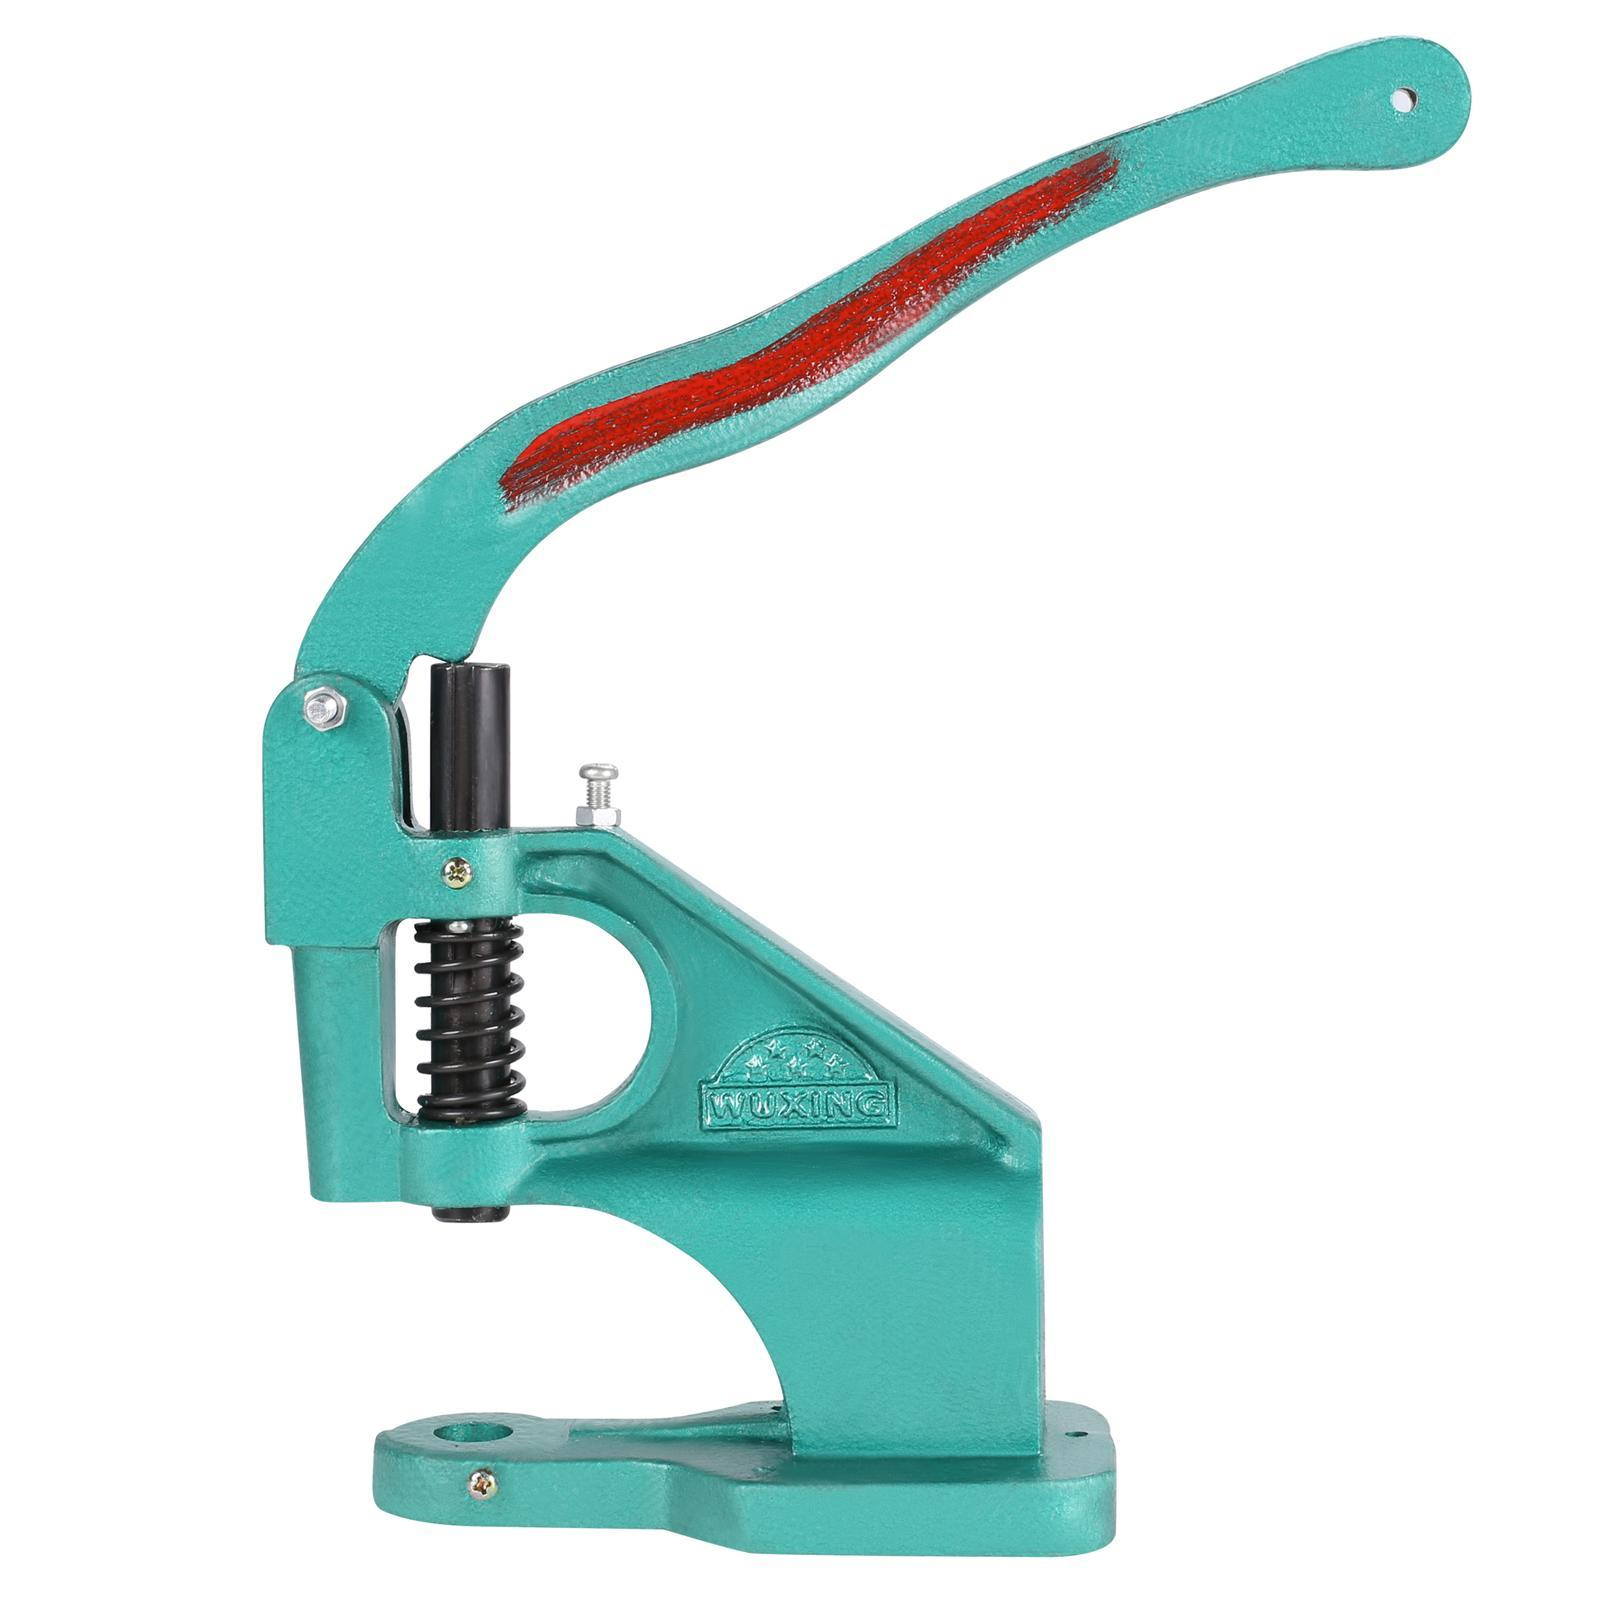 grommet machine for banners